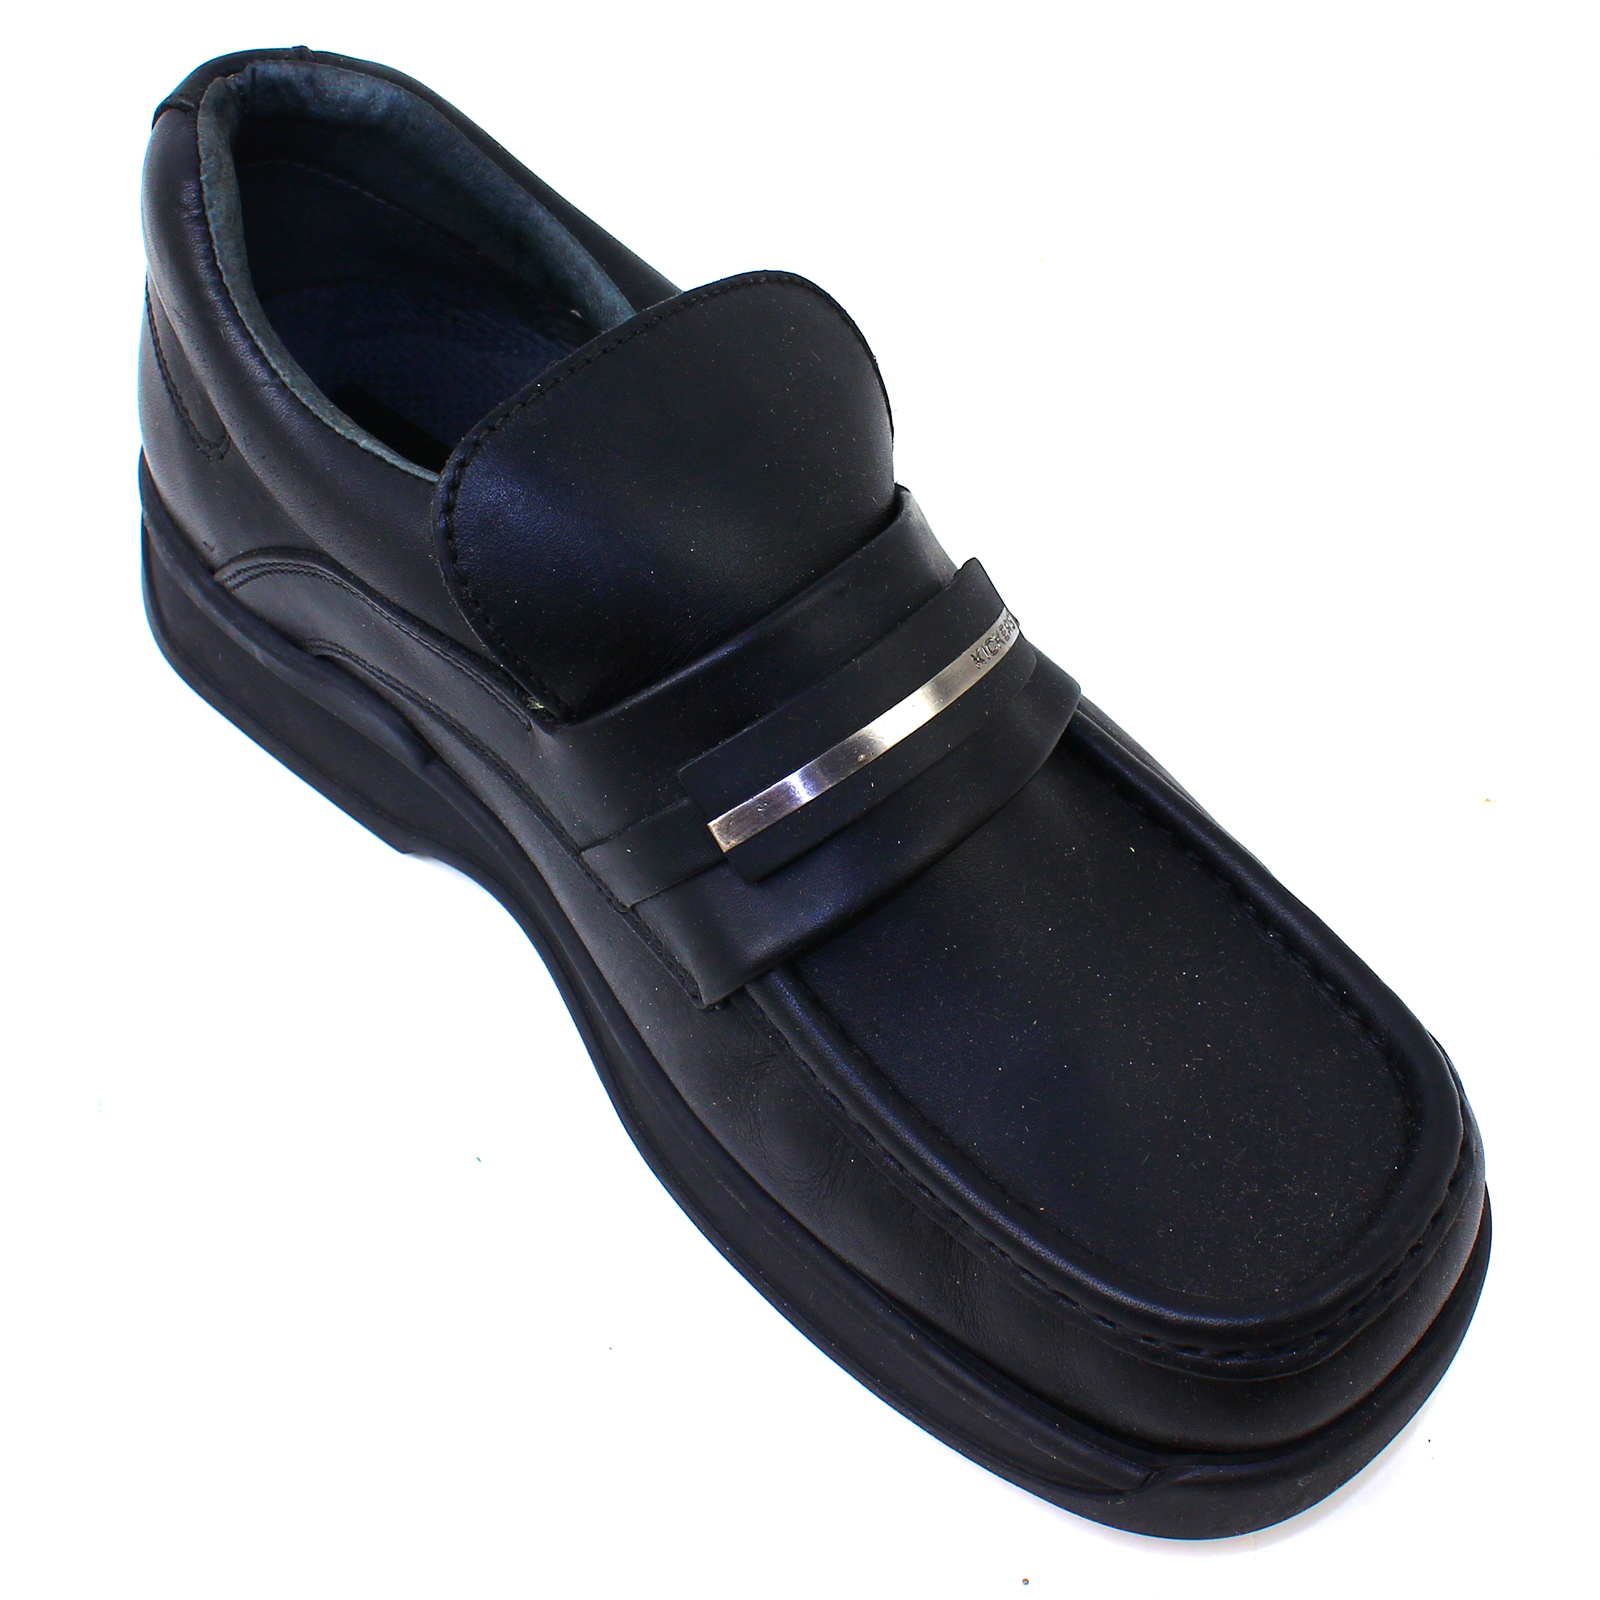 kickers womens shoes black leather casual blythe 3